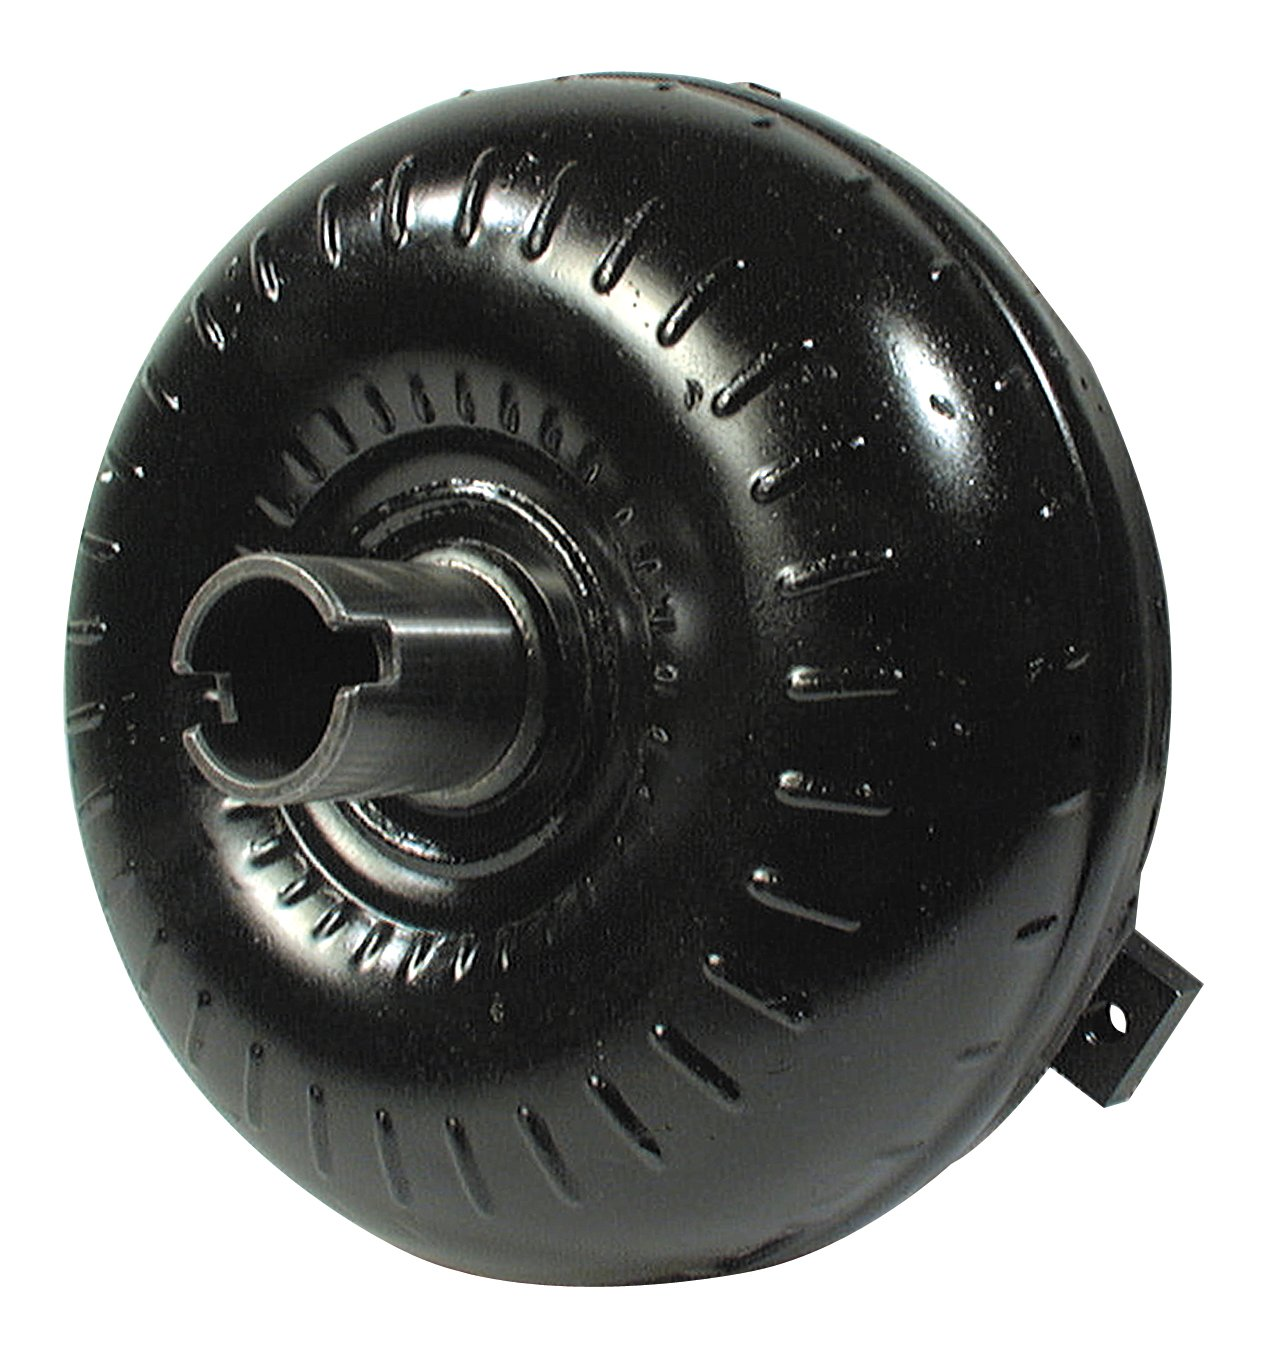 Coan Racing 20102 12'' Street Performance Torque Converter for Chevy by Coan Racing